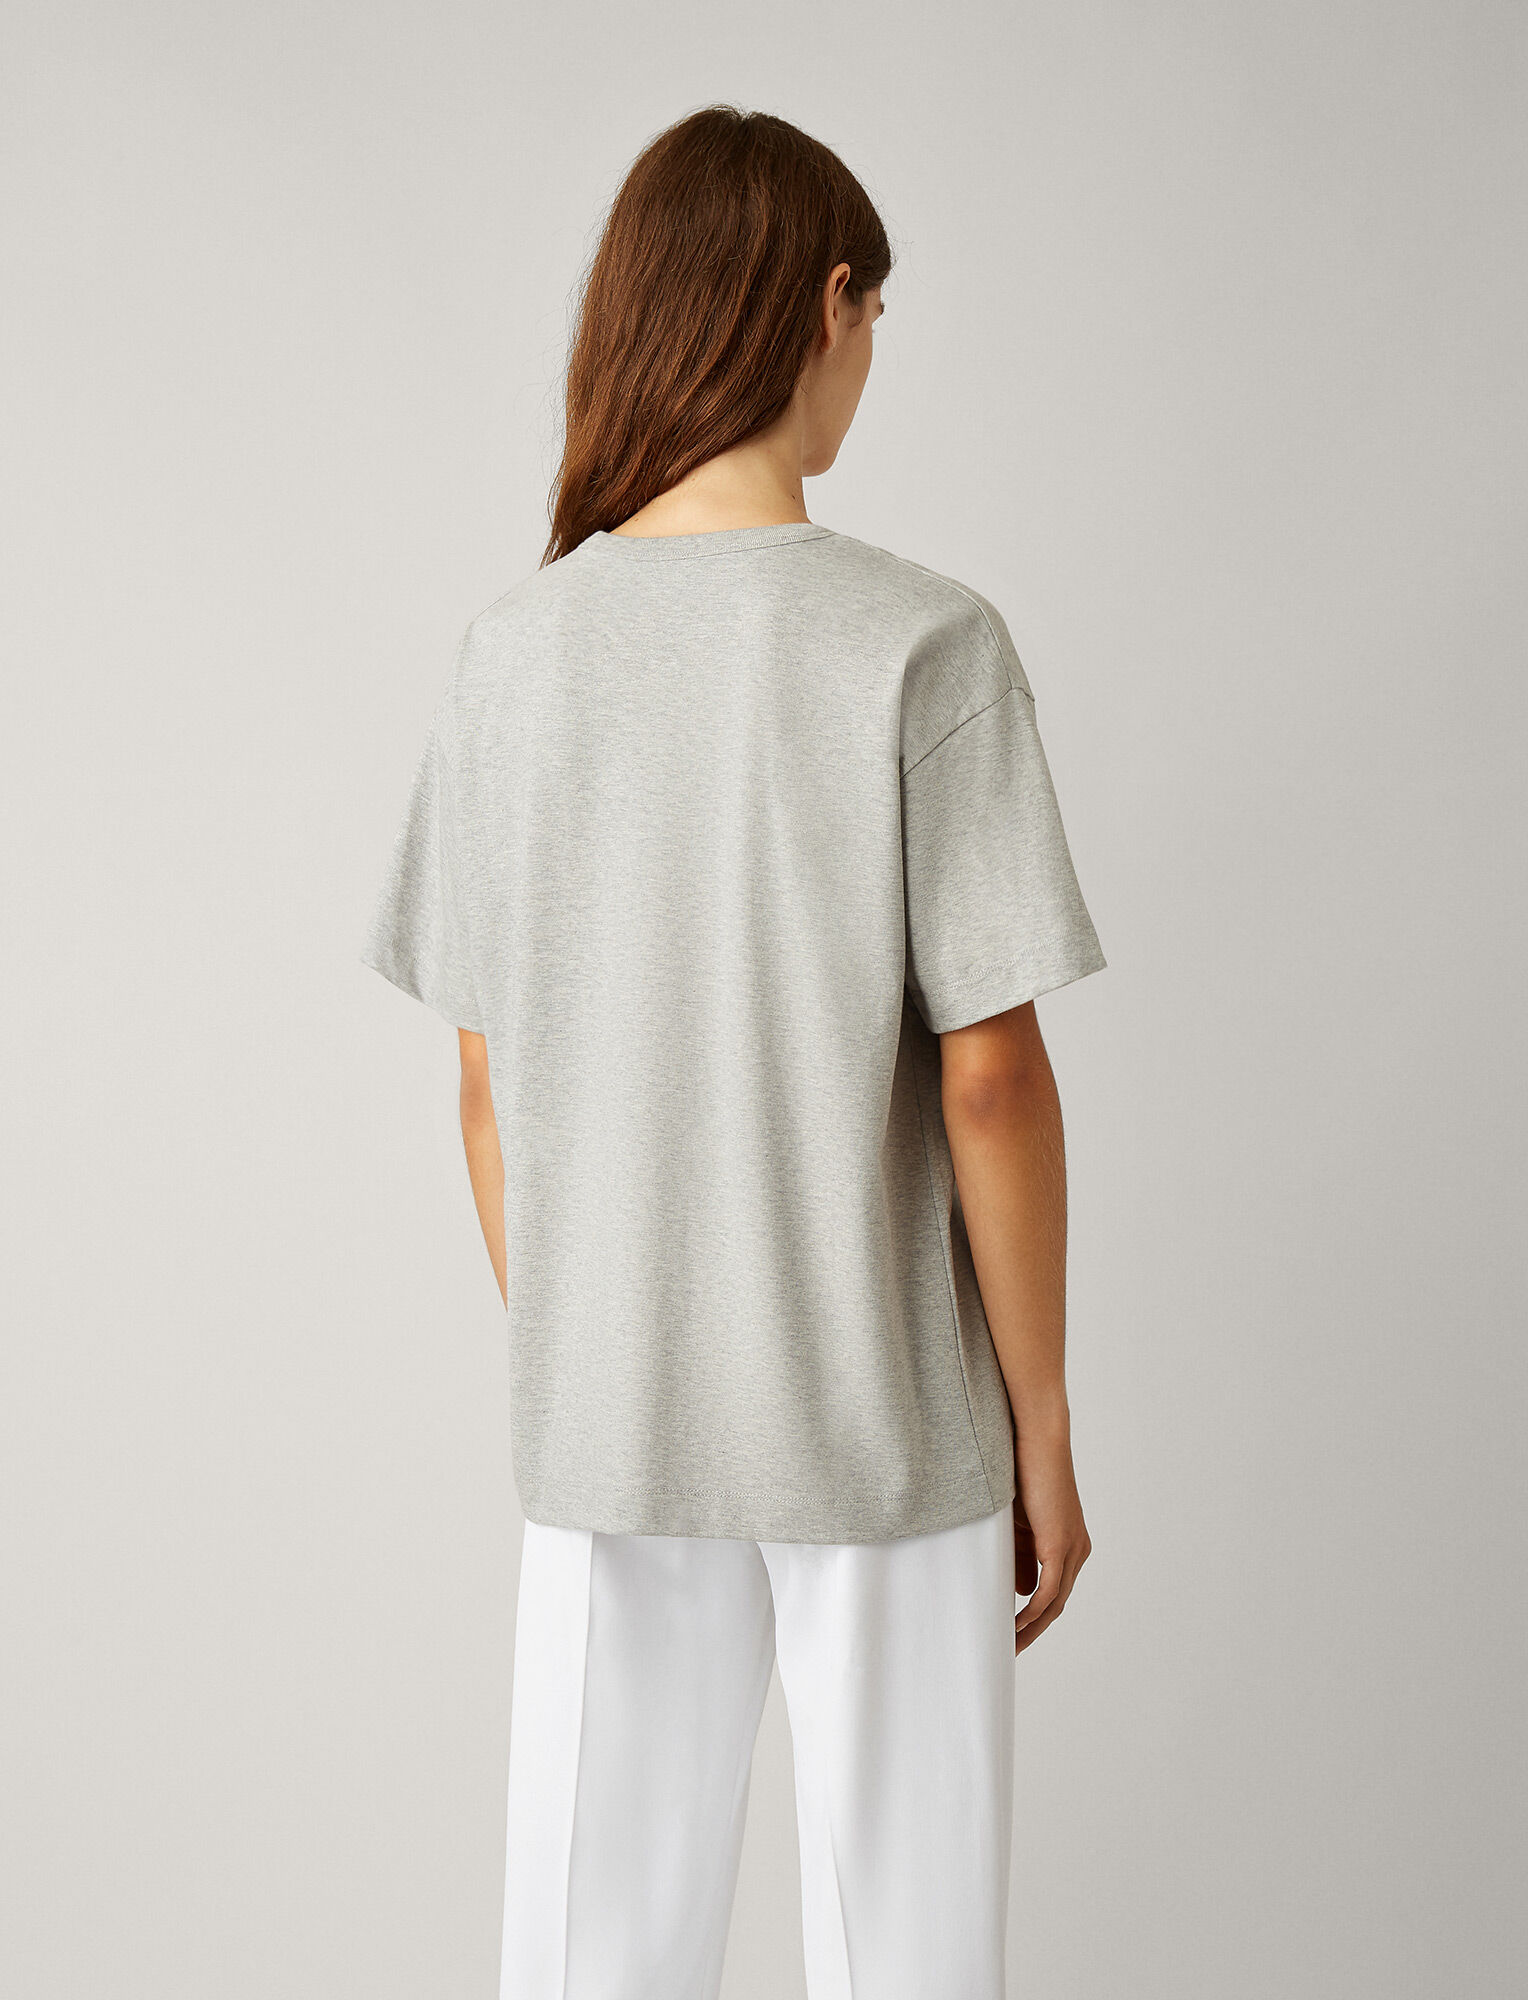 Joseph, Perfect Jersey Tee, in GREY CHINE